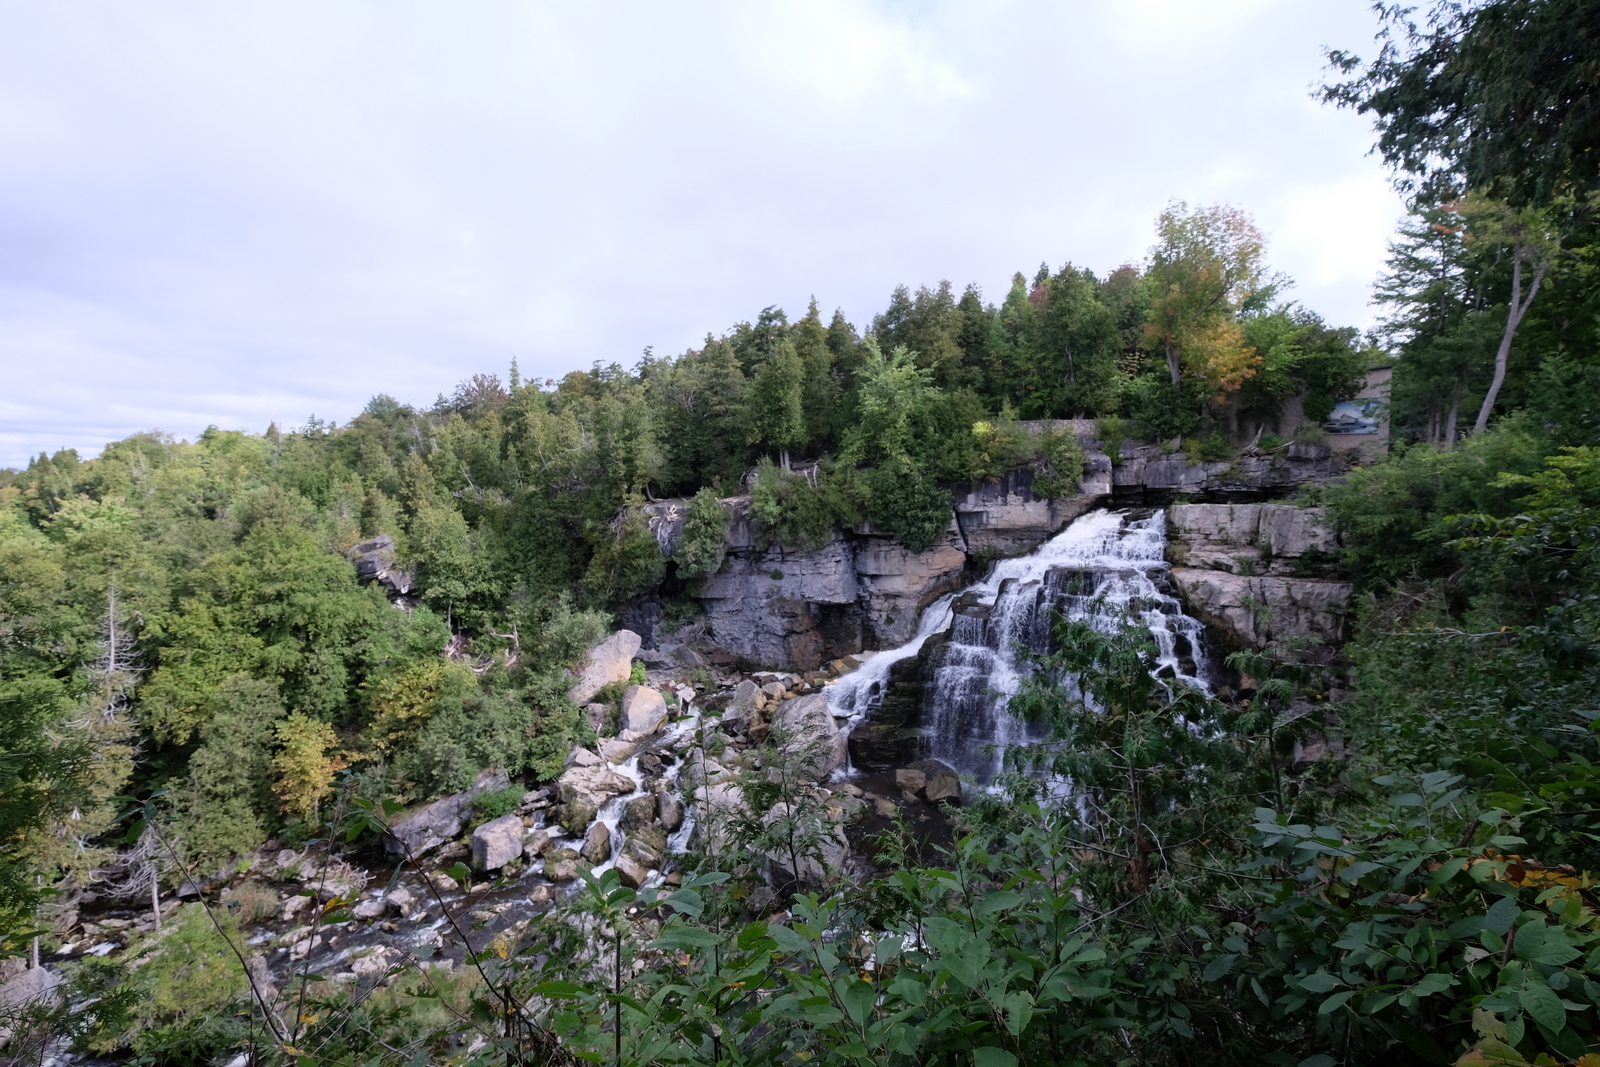 Inglis Falls is one of the prettiest waterfalls I've seen in Ontario. - JIM BYERS PHOTO